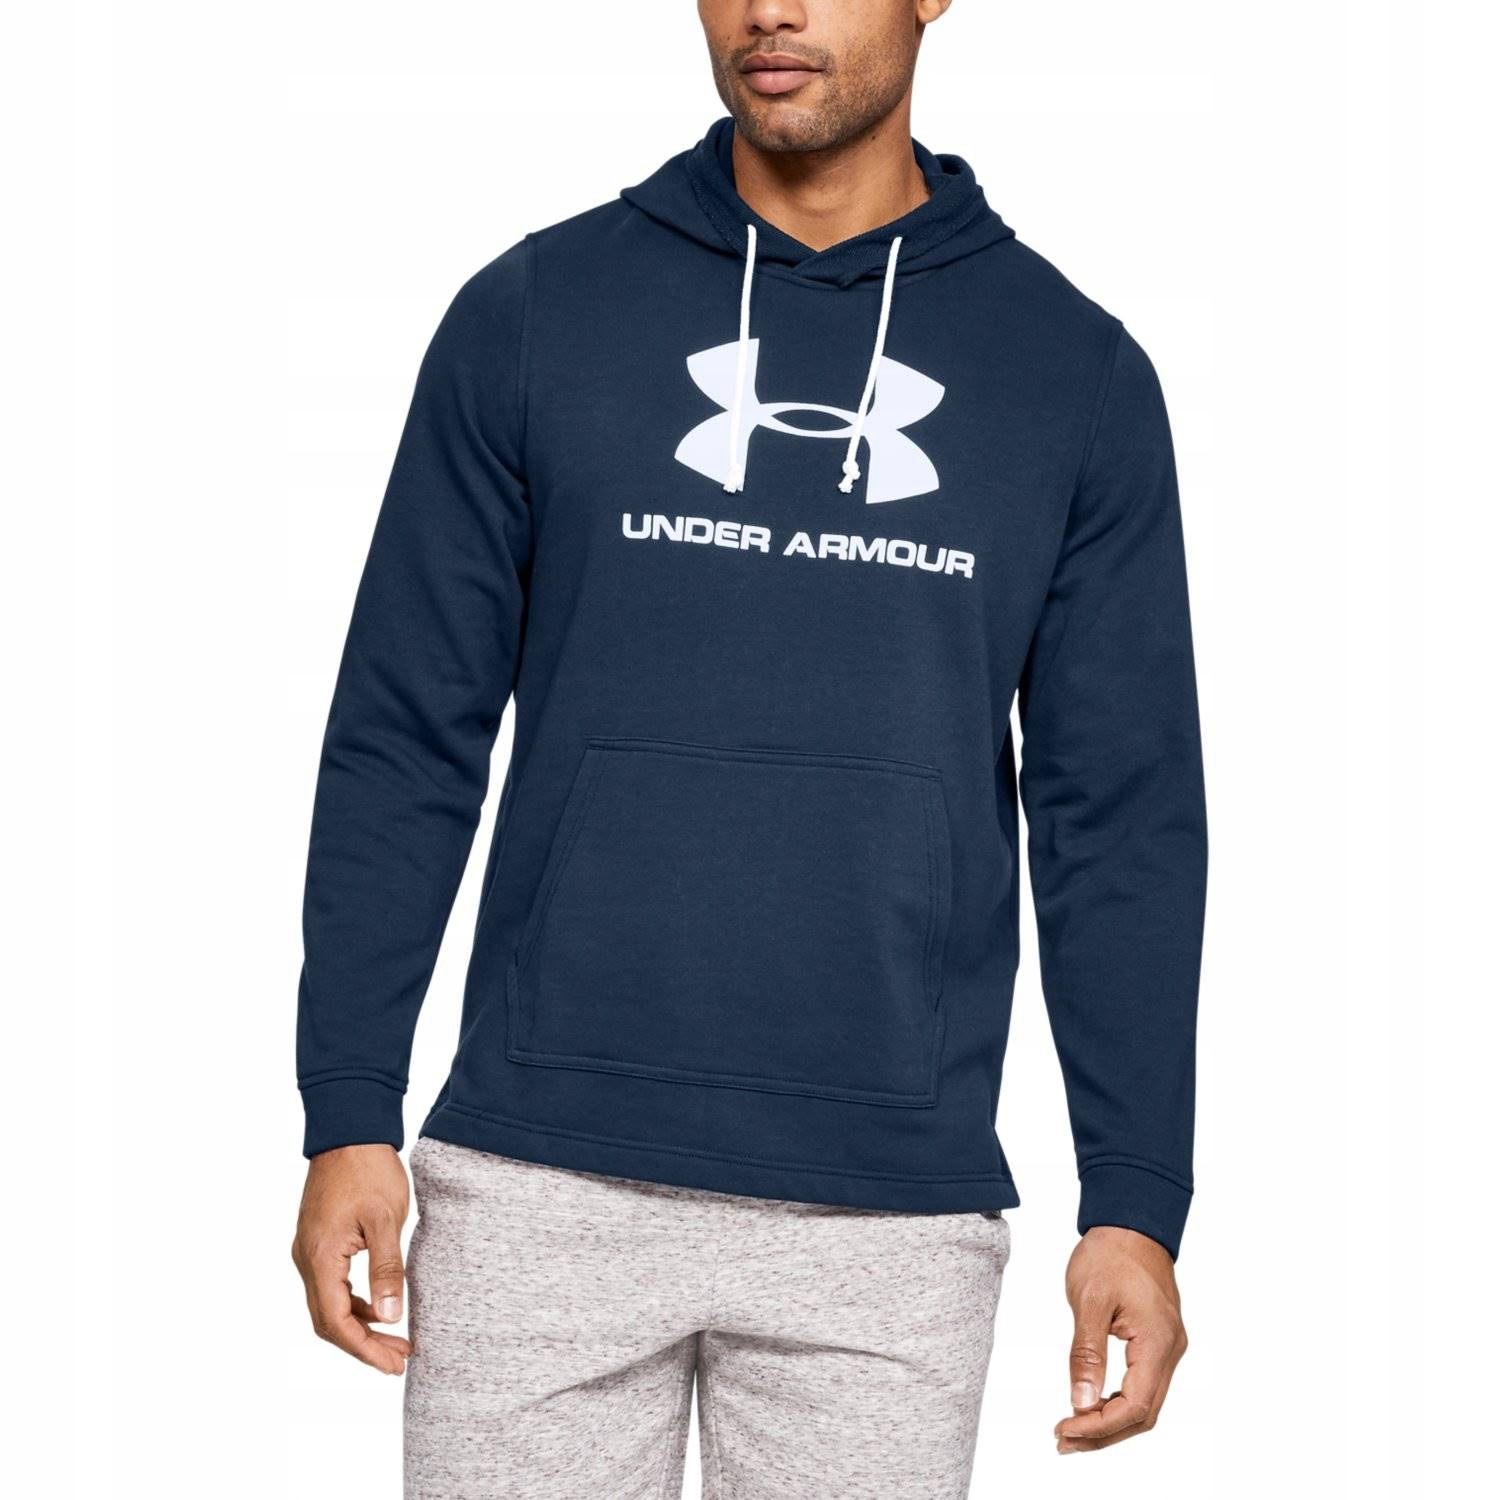 UNDER ARMOUR BLUZA MĘSKA TERRY LOGO HOODIE NAVY S